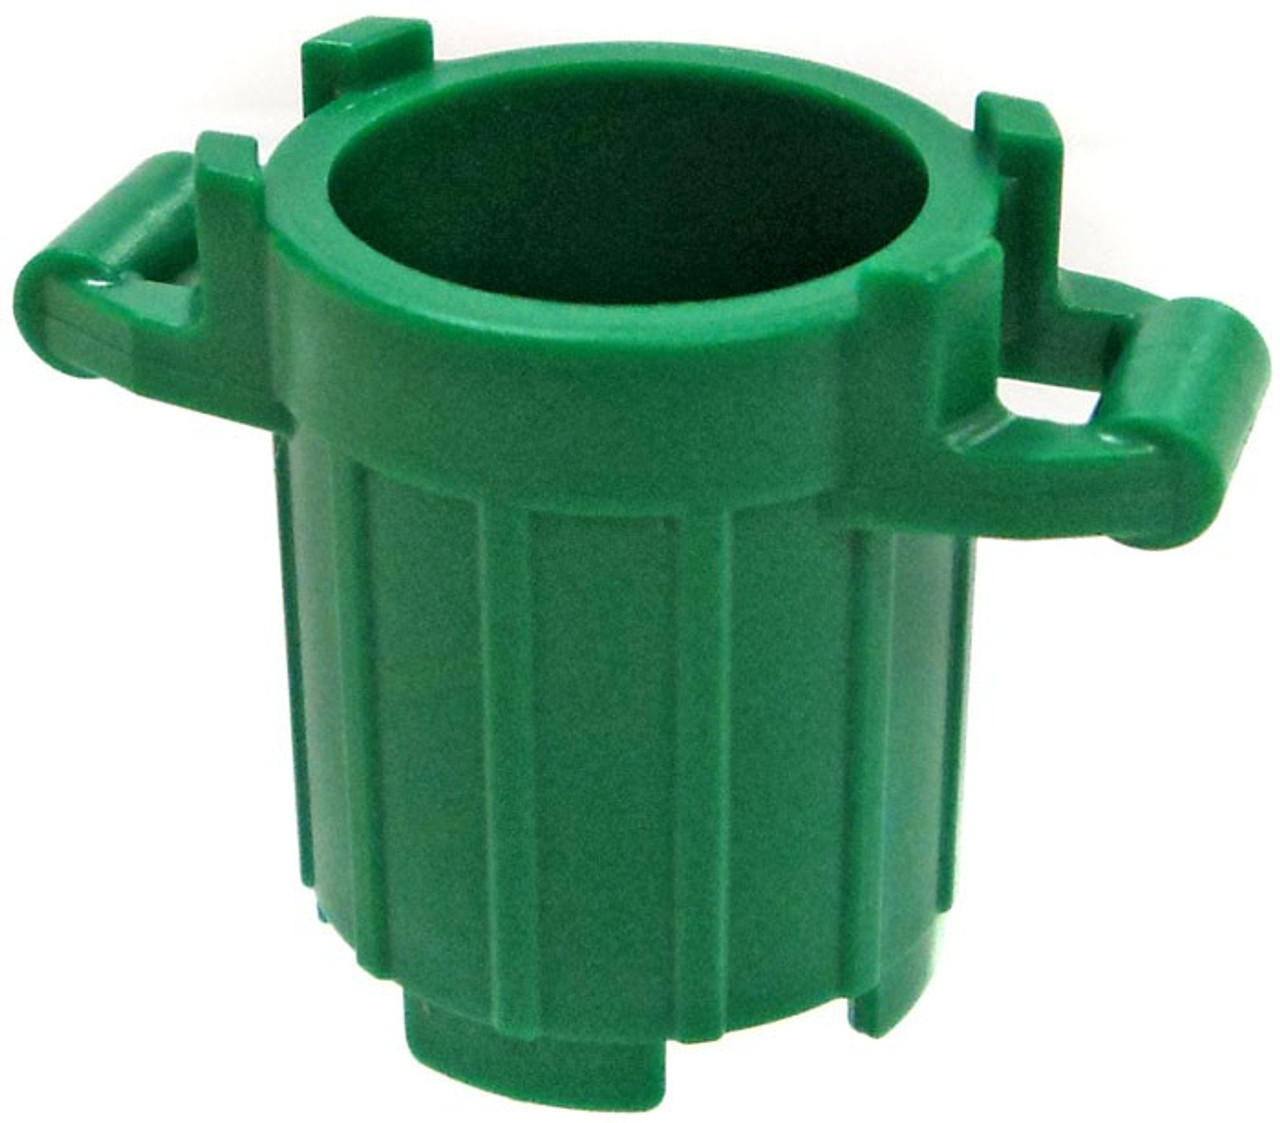 LEGO City Items Green Garbage Can Loose - ToyWiz